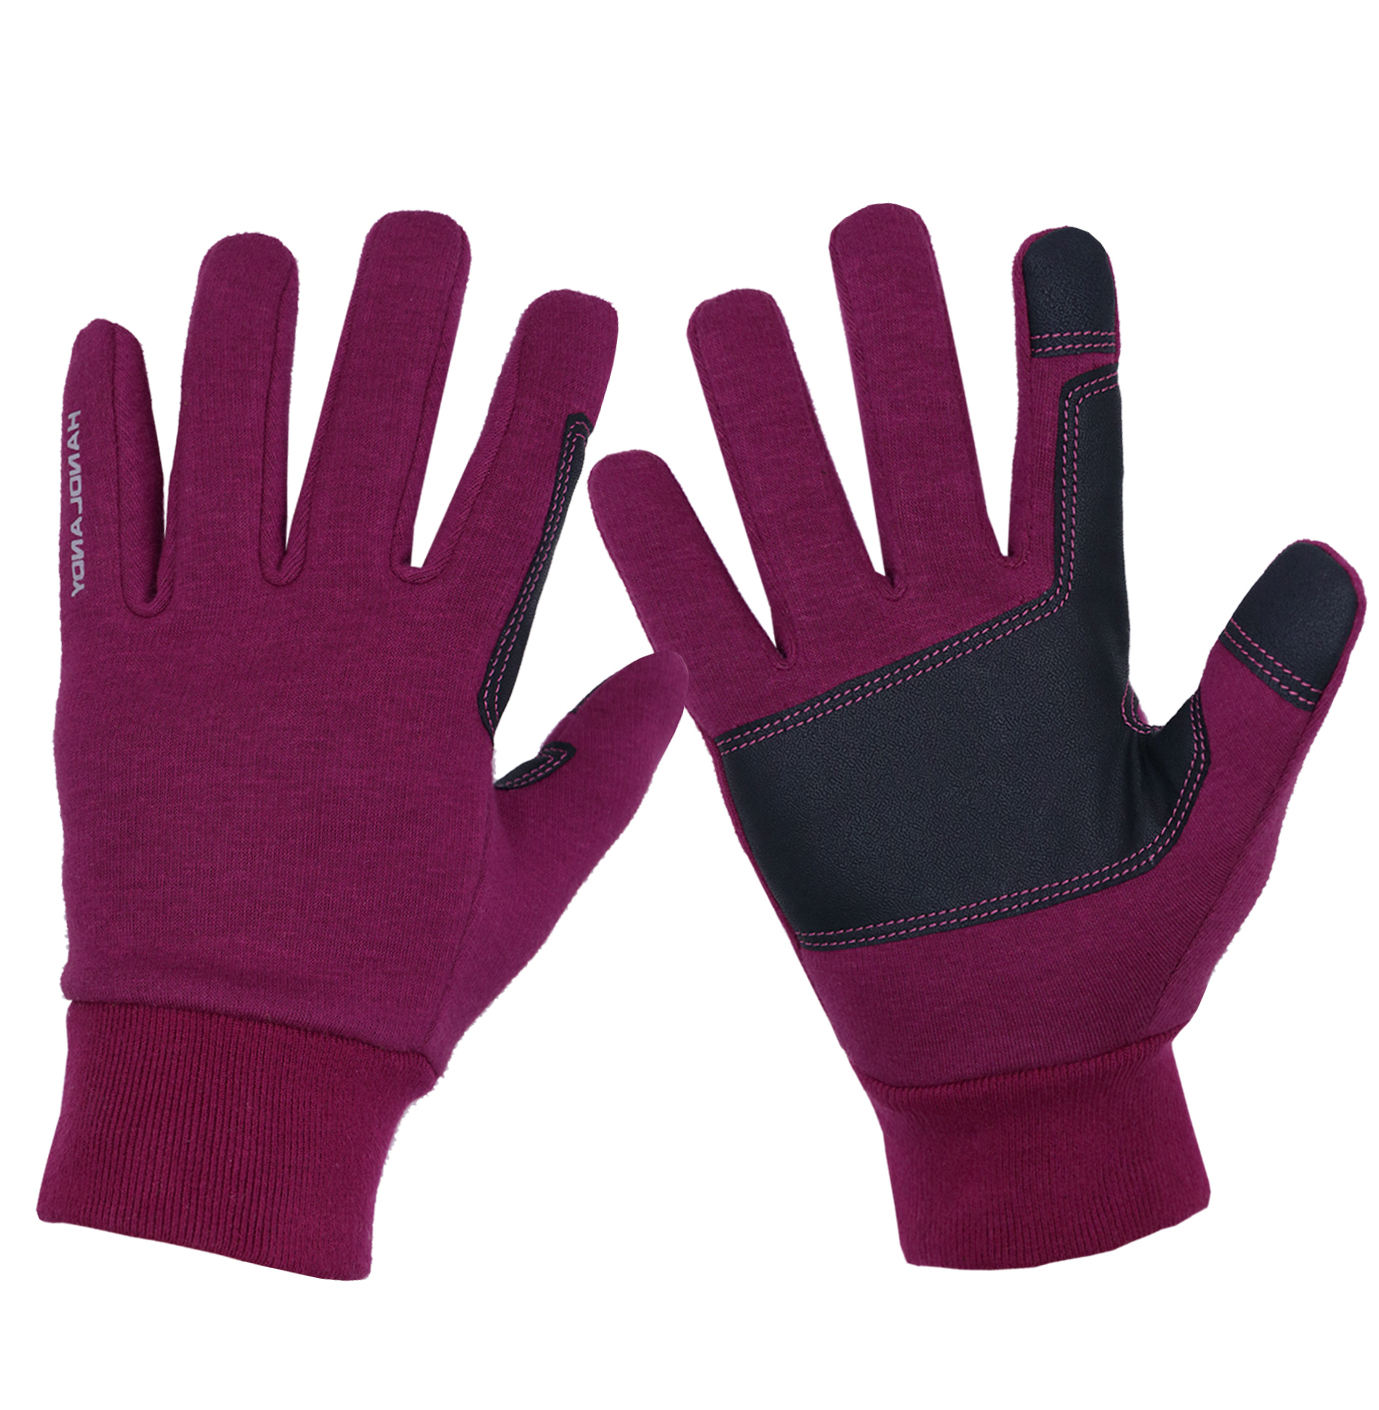 HANDLANDY Purple Ladies Warm Riding Other Sports Cycling Outdoor Custom Touch Screen Winter Running Gloves For Women